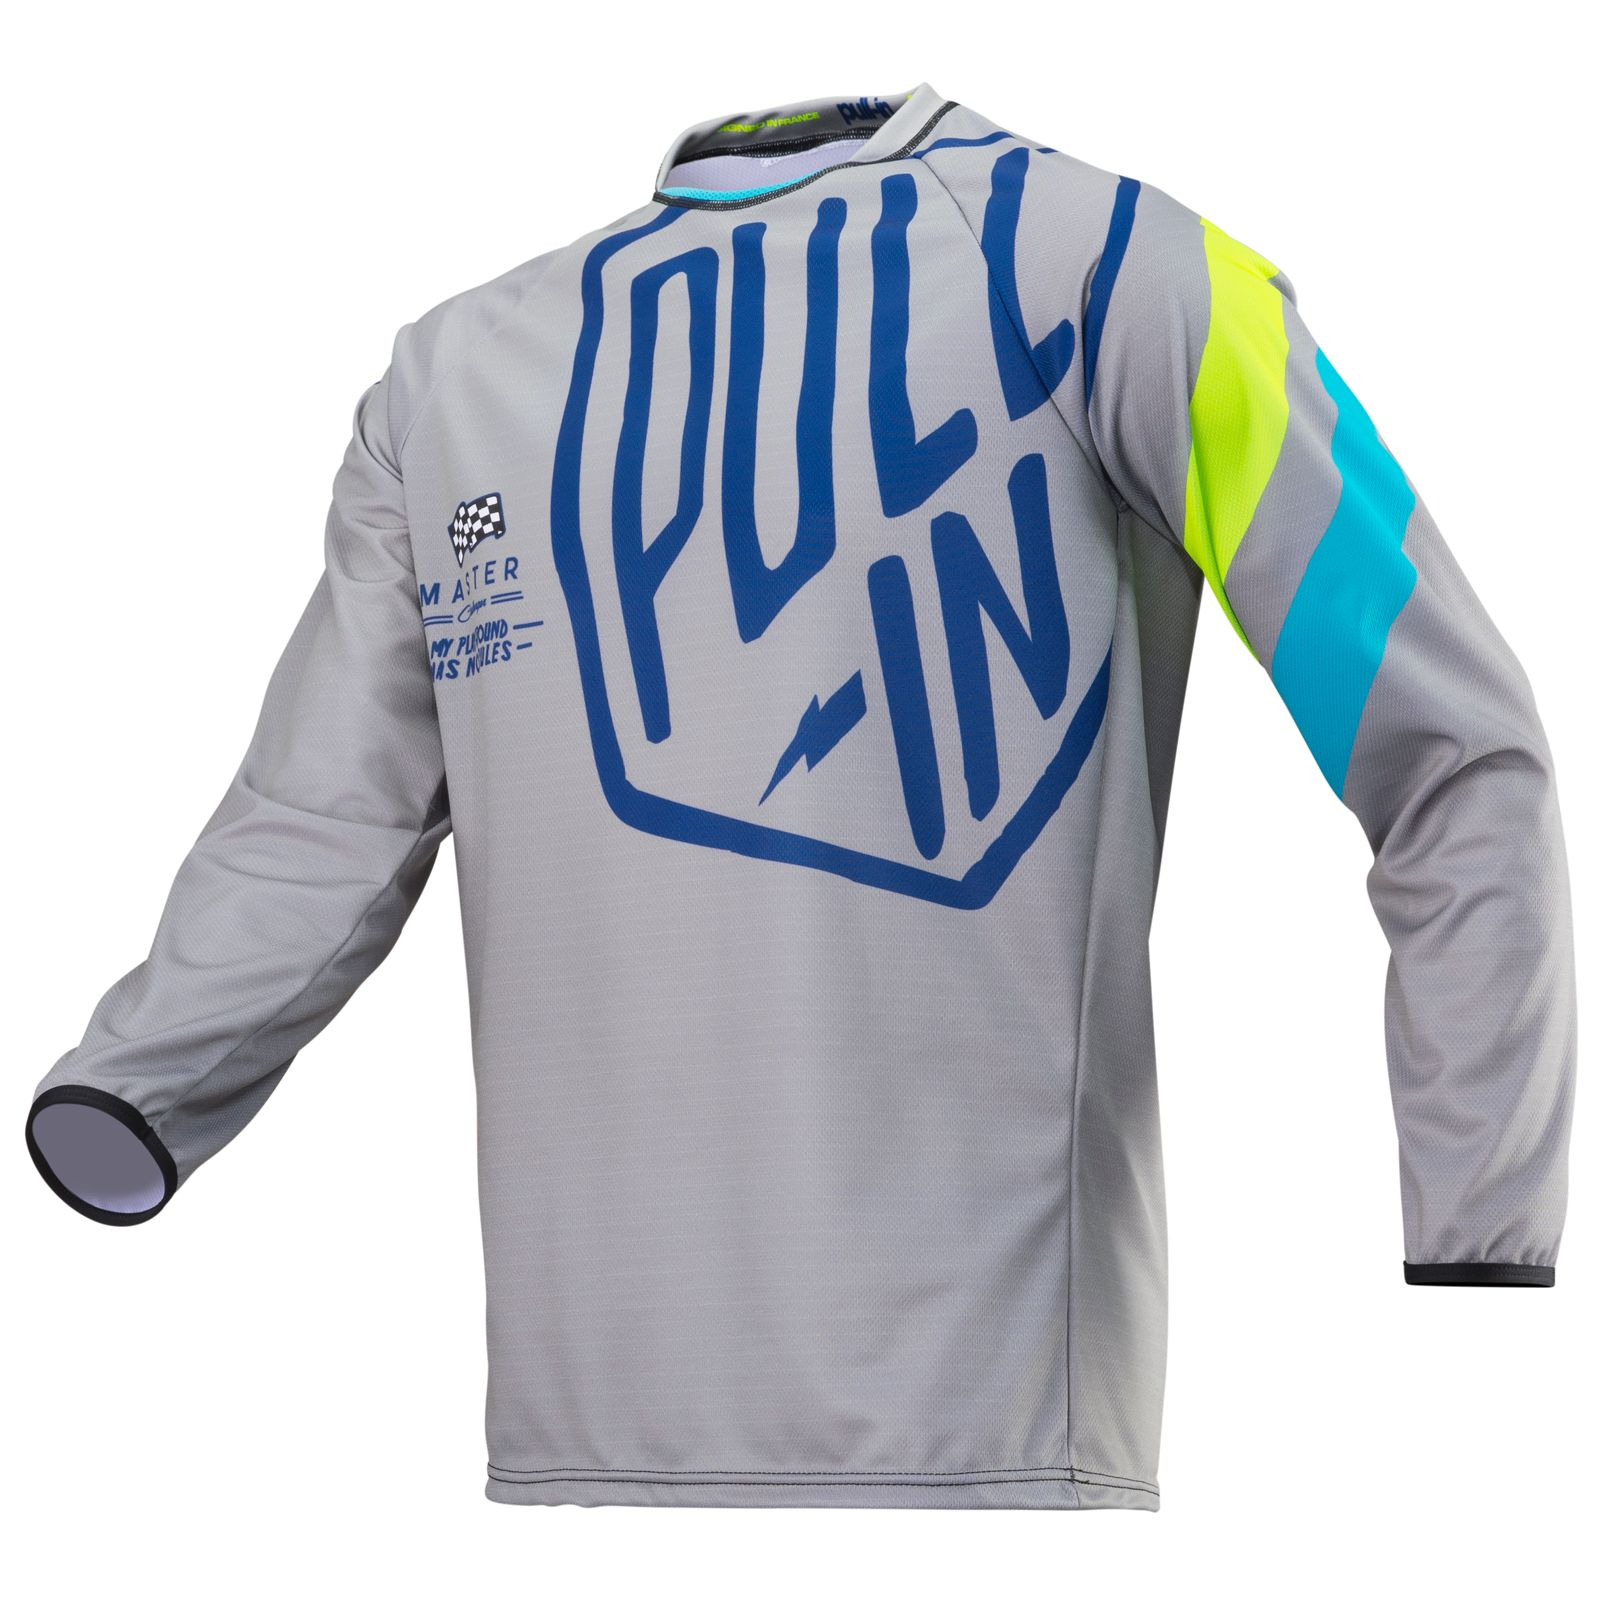 195-9003150-33 Pull-In 2019 Challenger Master Grey Lime Motocross Jersey Enduro Trikot Crosstrui Maillot Offroad